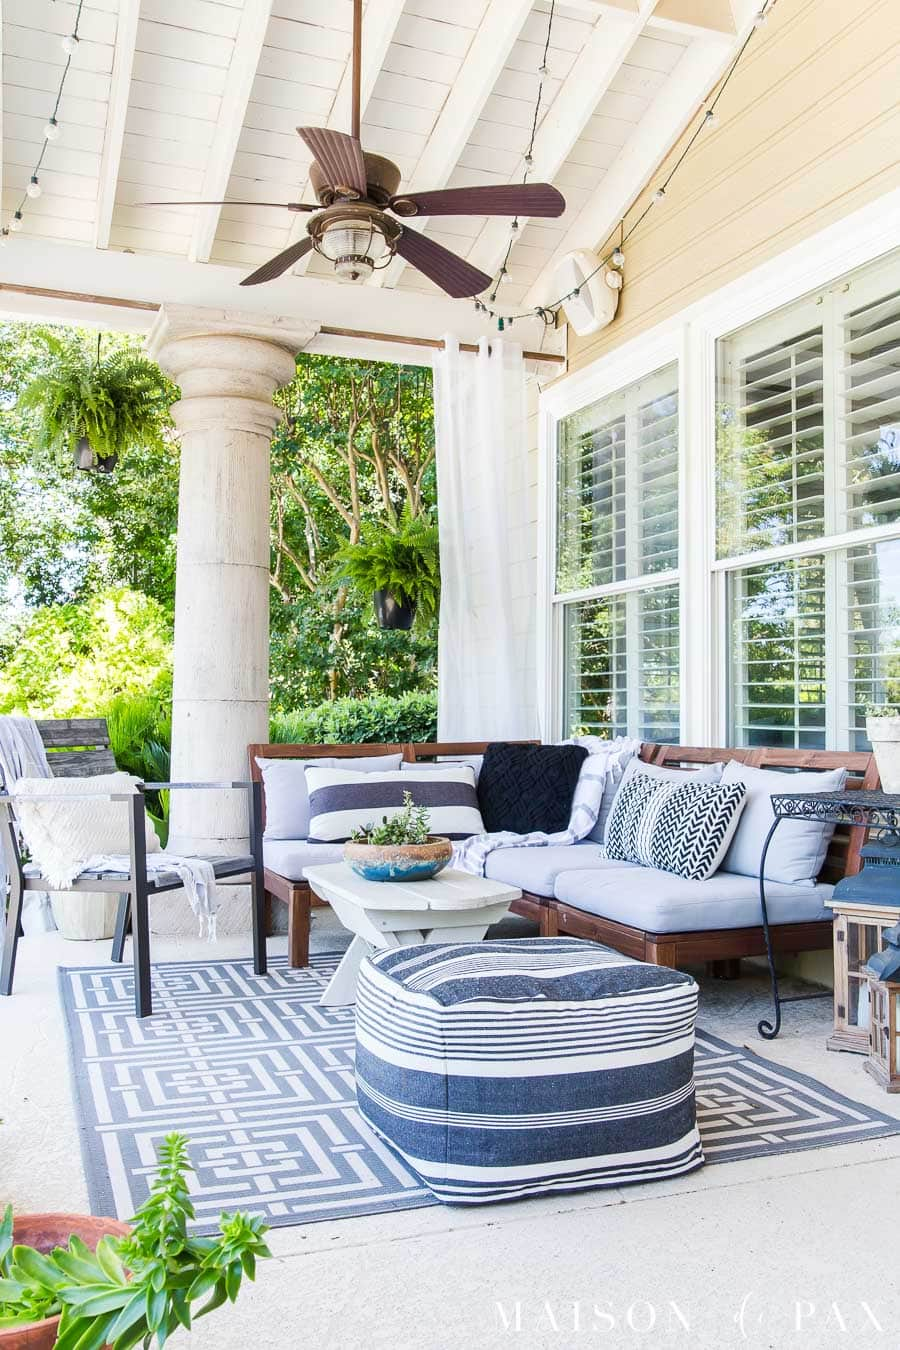 clean patio with wood and metal furniture decorated in black, white, and gray | Maison de Pax